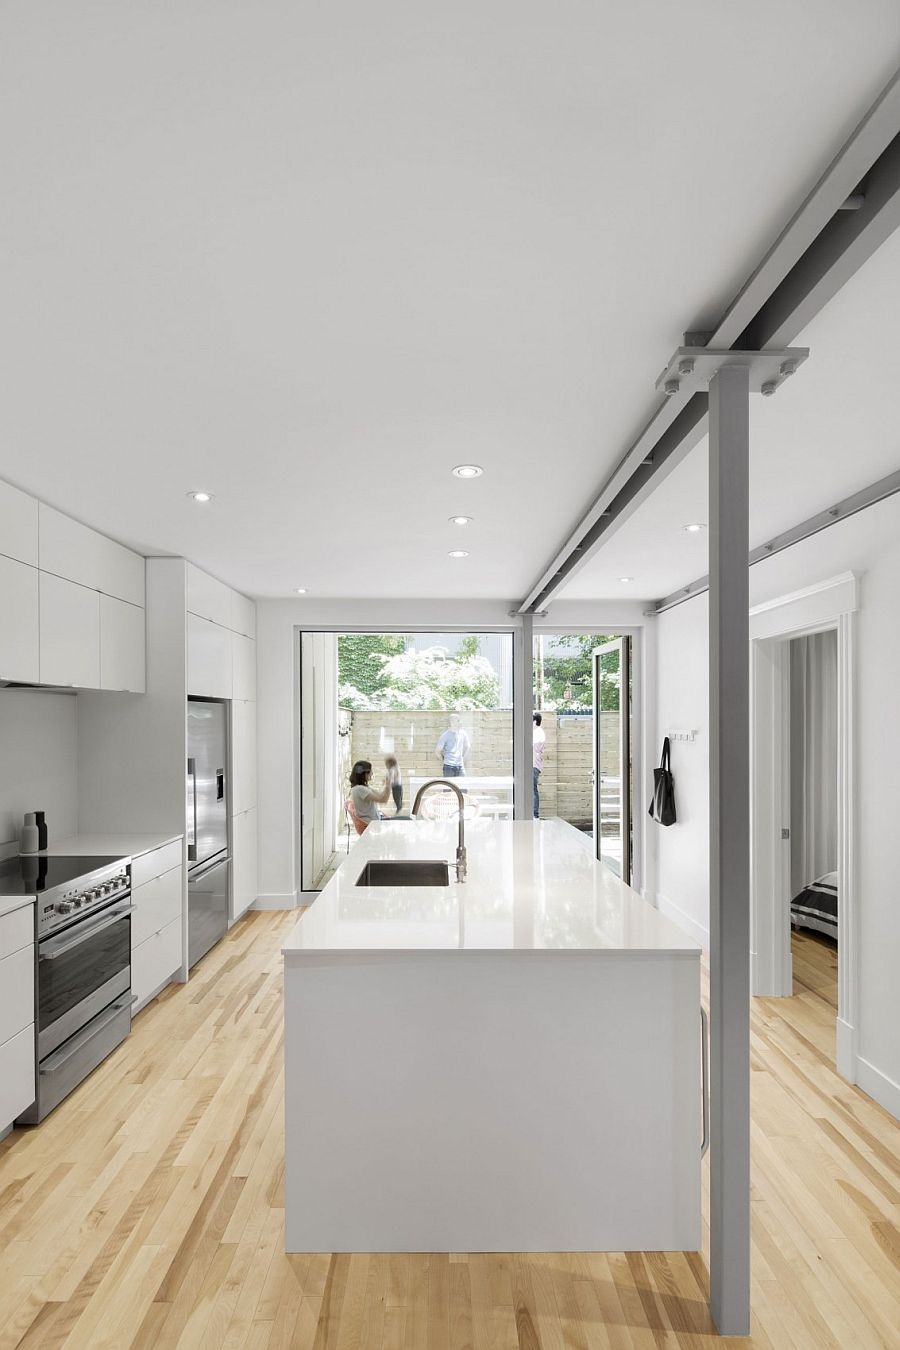 Kitchen in white connected with the exterior